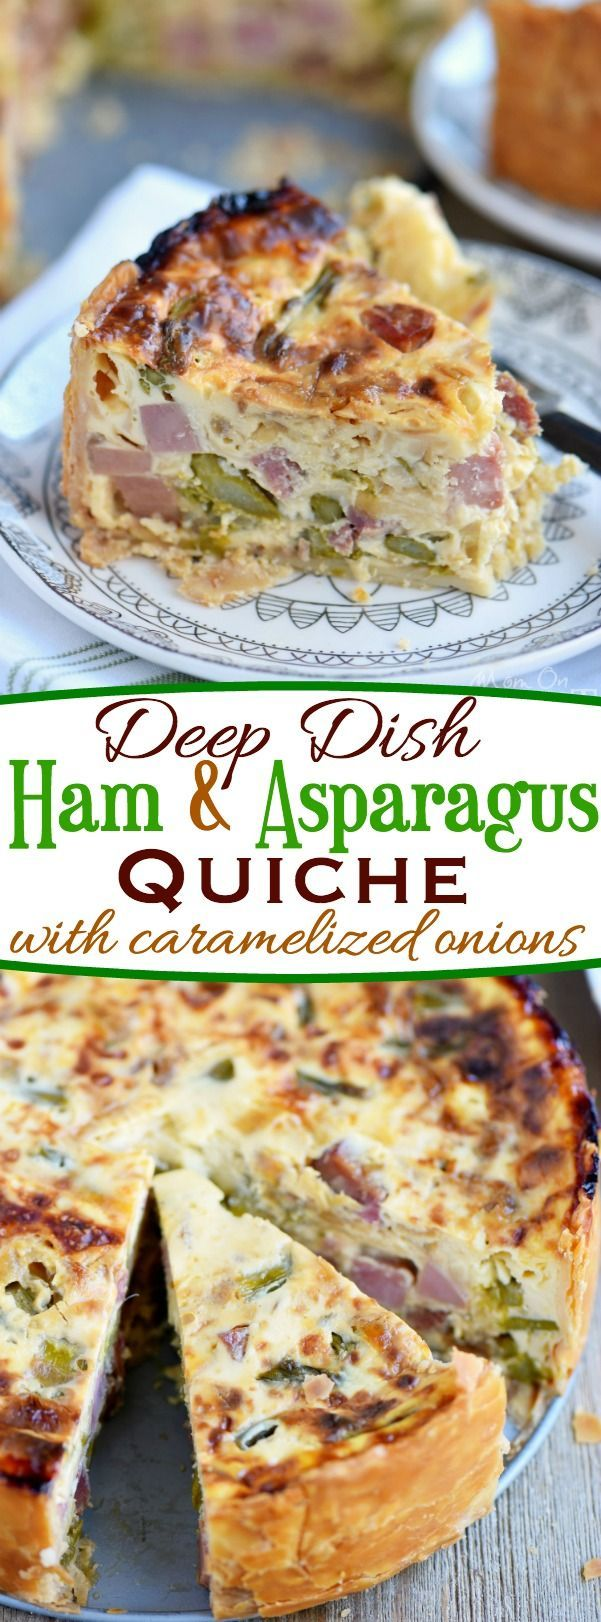 This Deep Dish Ham and Asparagus Quiche with caramelized onions is the perfect addition to your holiday brunch menu! Make it the day before and serve cold or room temperature - both ways are delicious! Also makes a hearty dinner! // Mom On Timeout